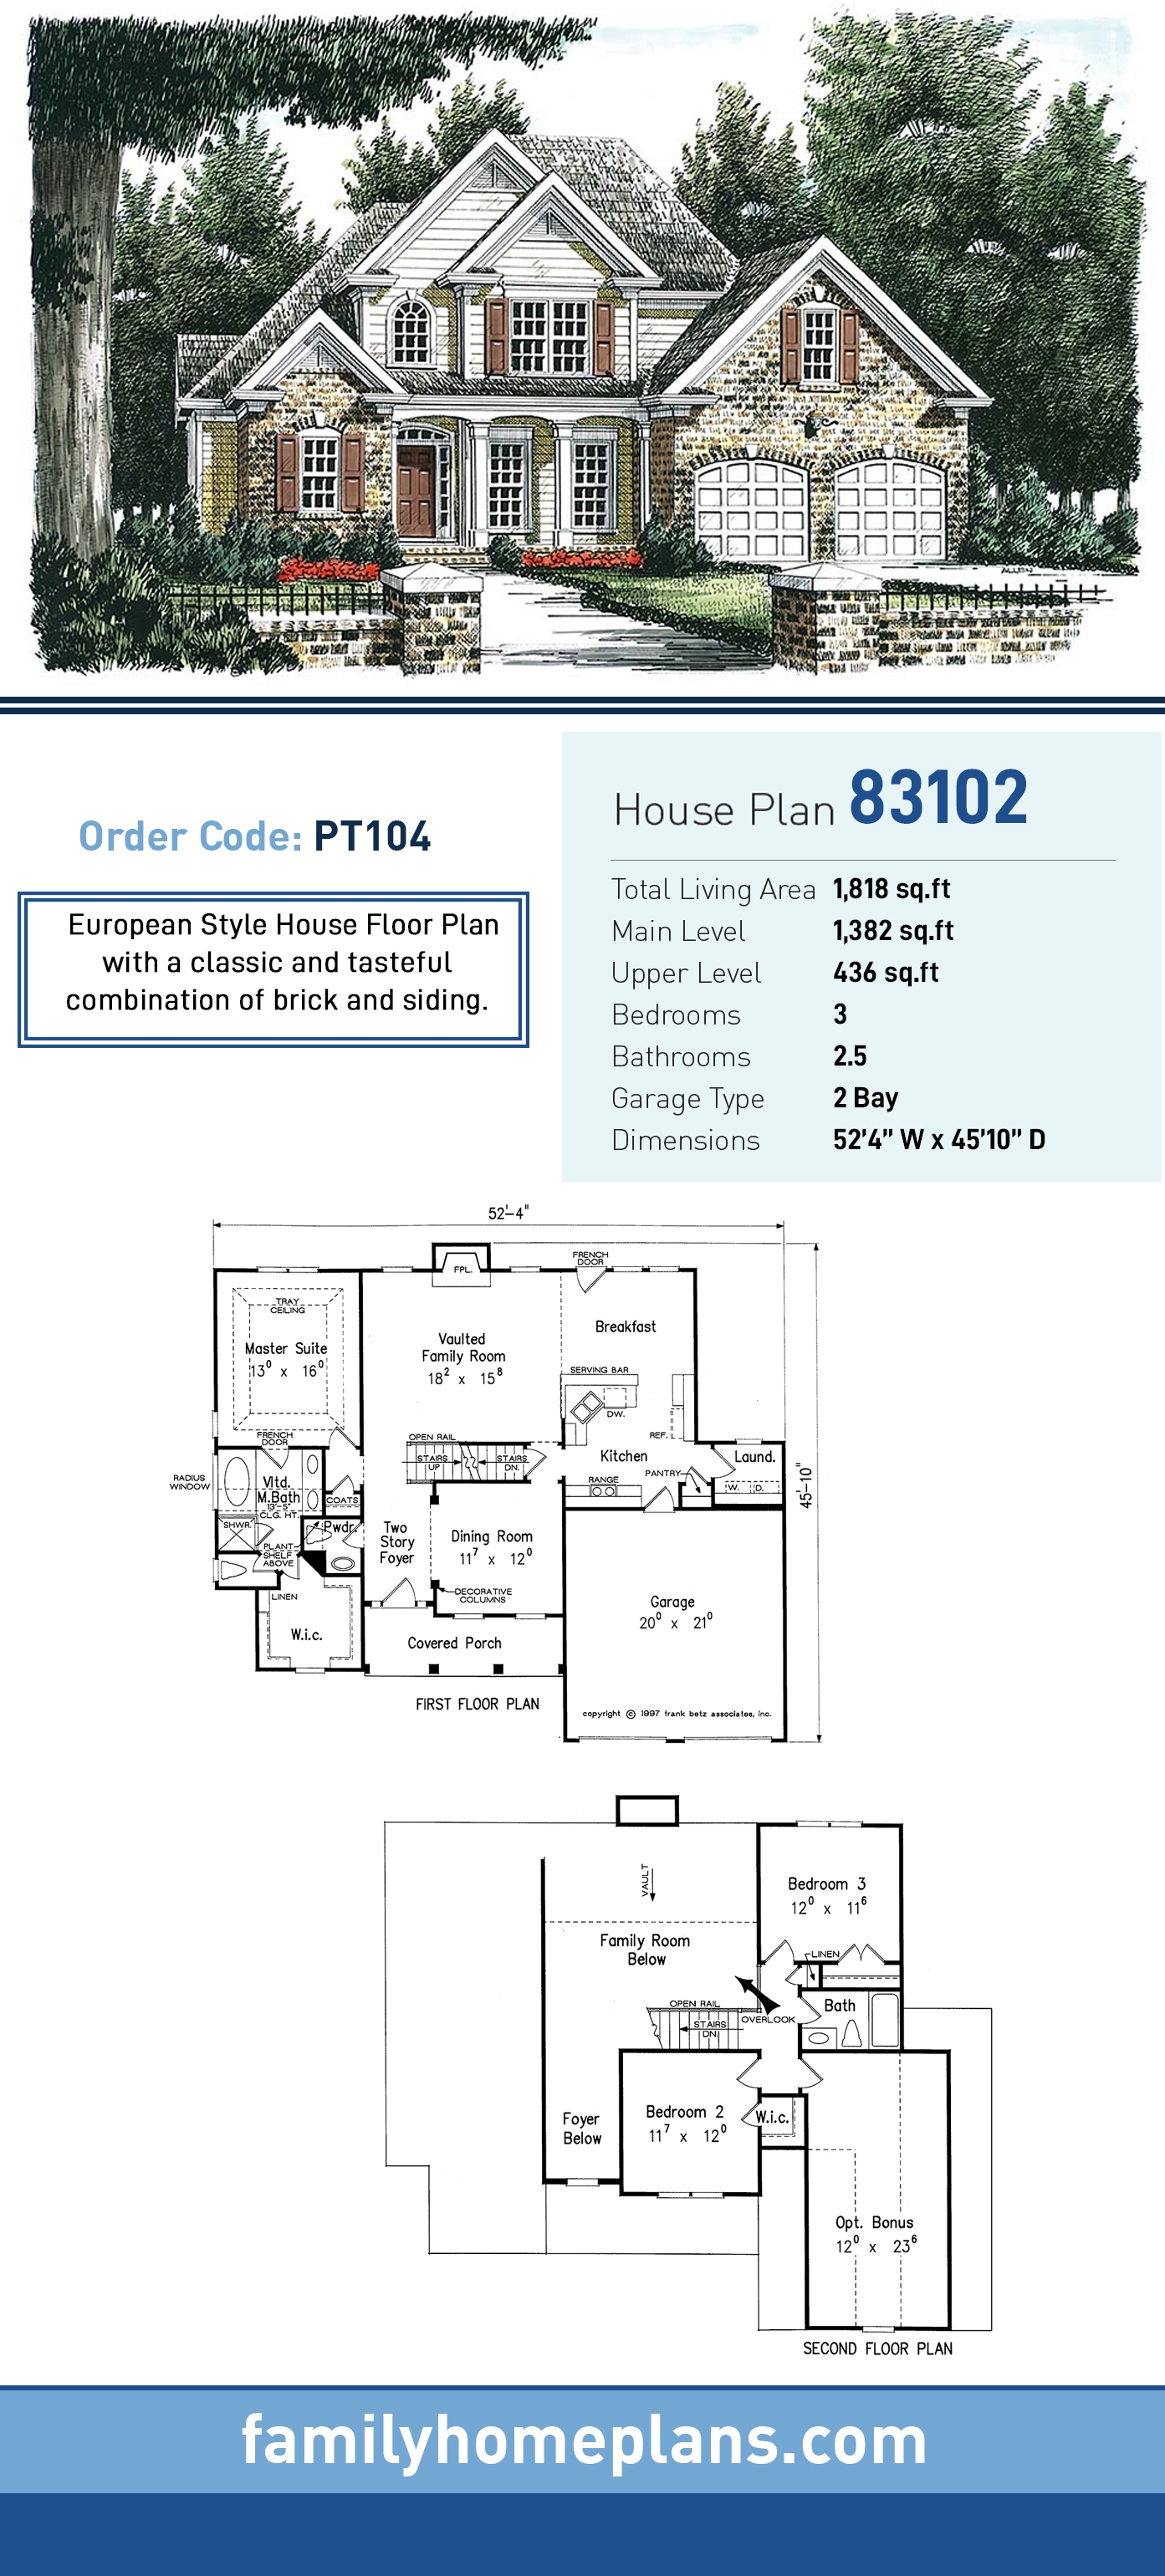 European, Traditional House Plan 83102 with 3 Beds, 3 Baths, 2 Car Garage